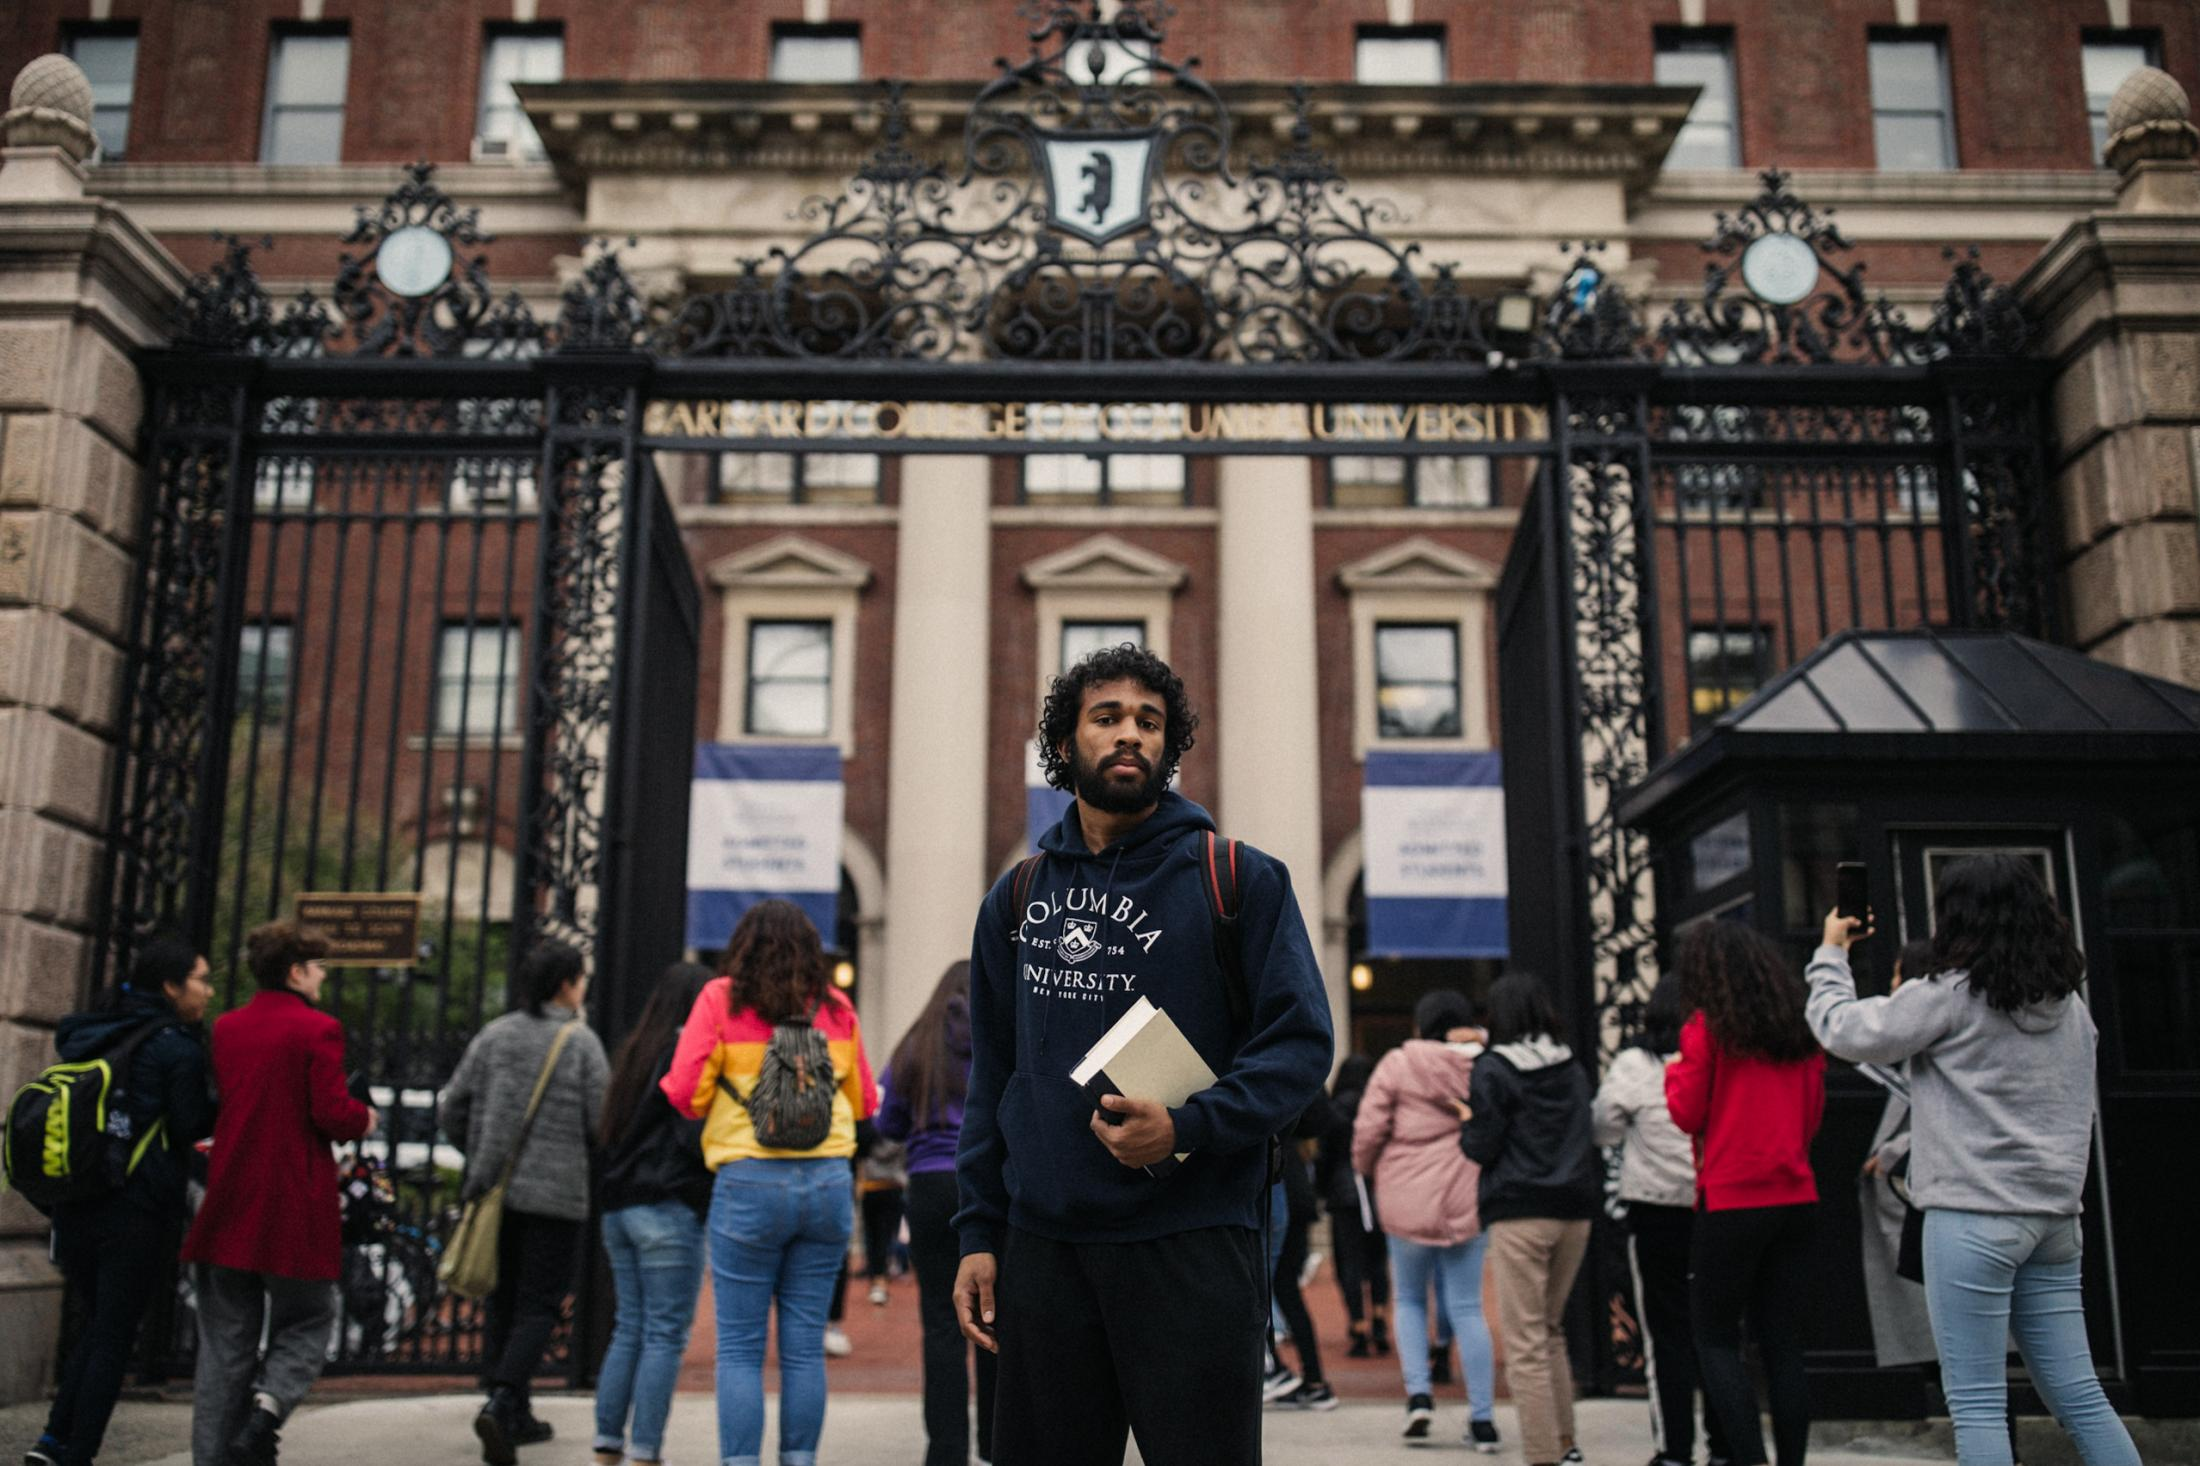 Alexander Cecil McNab, 23, a black Columbia University senior that was confronted by security officers after walking through the gates of Barnard College without showing his I.D. that led to accusations of racial profiling by campus security, for The New York Times